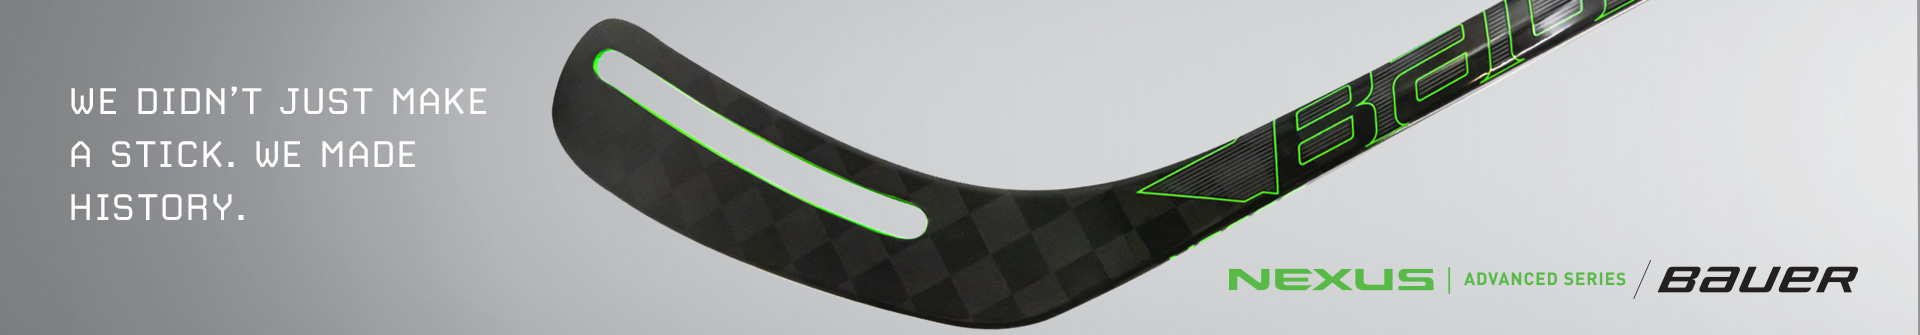 Shop The Bauer Nexus ADV Hockey Sticks For Sale In Store At Participating Source For Sports Near You.